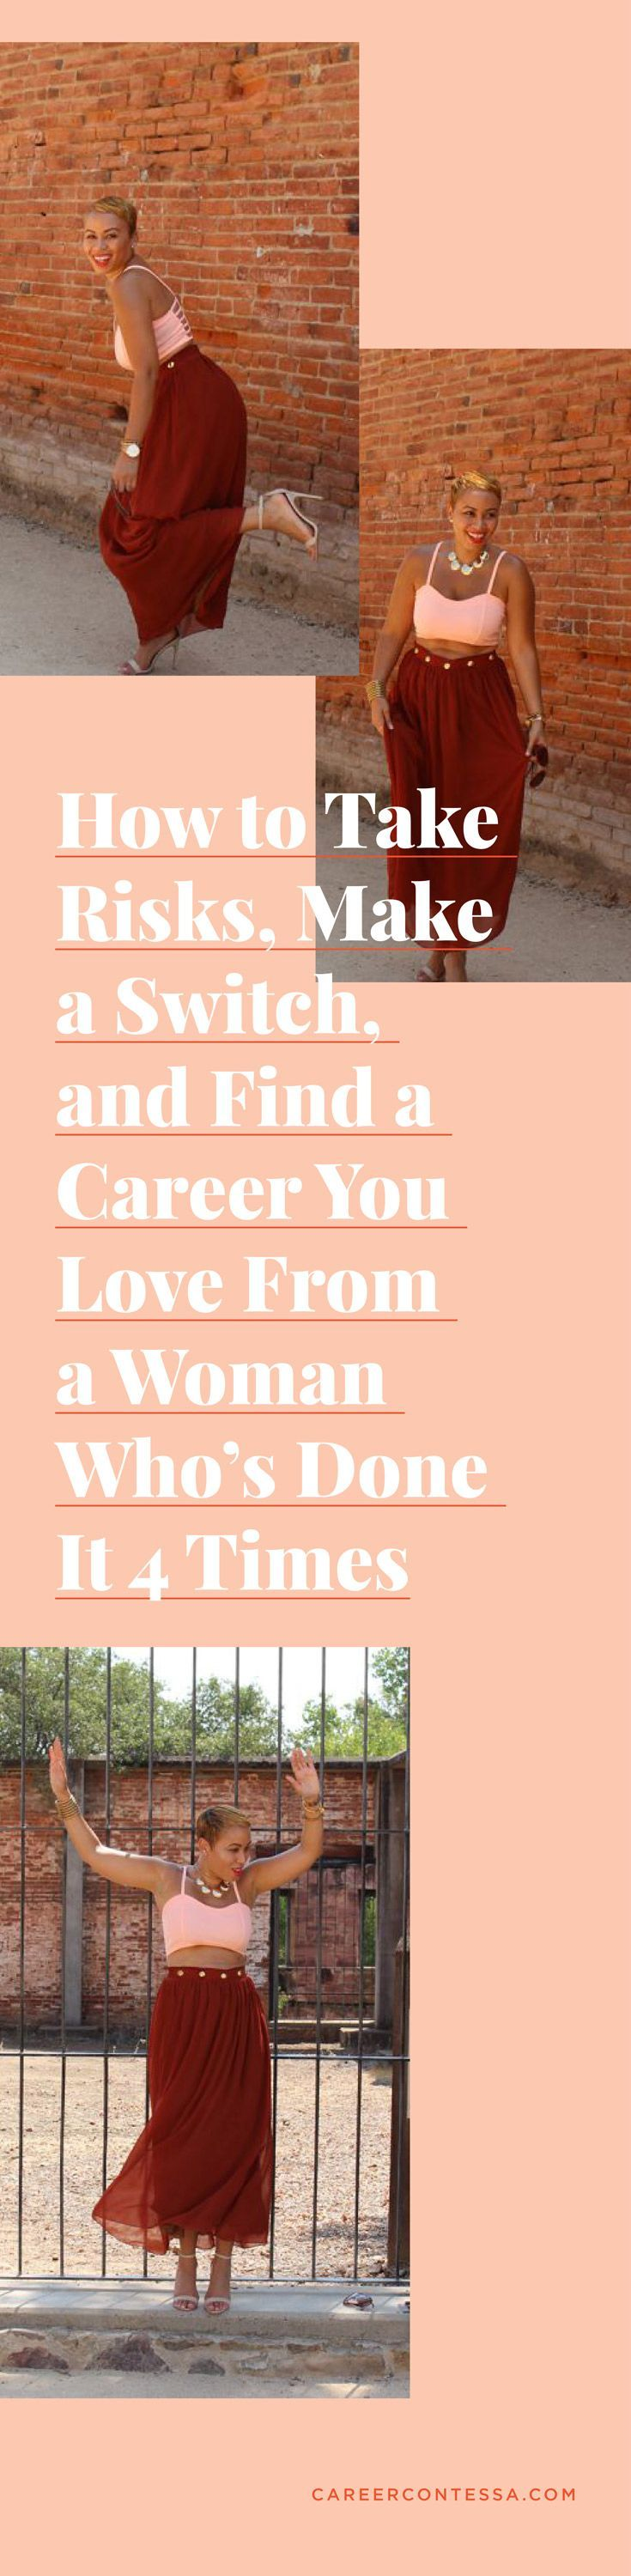 How To Take Risks And Find A Career You Loveu2014From A Woman Whou0027s Done It